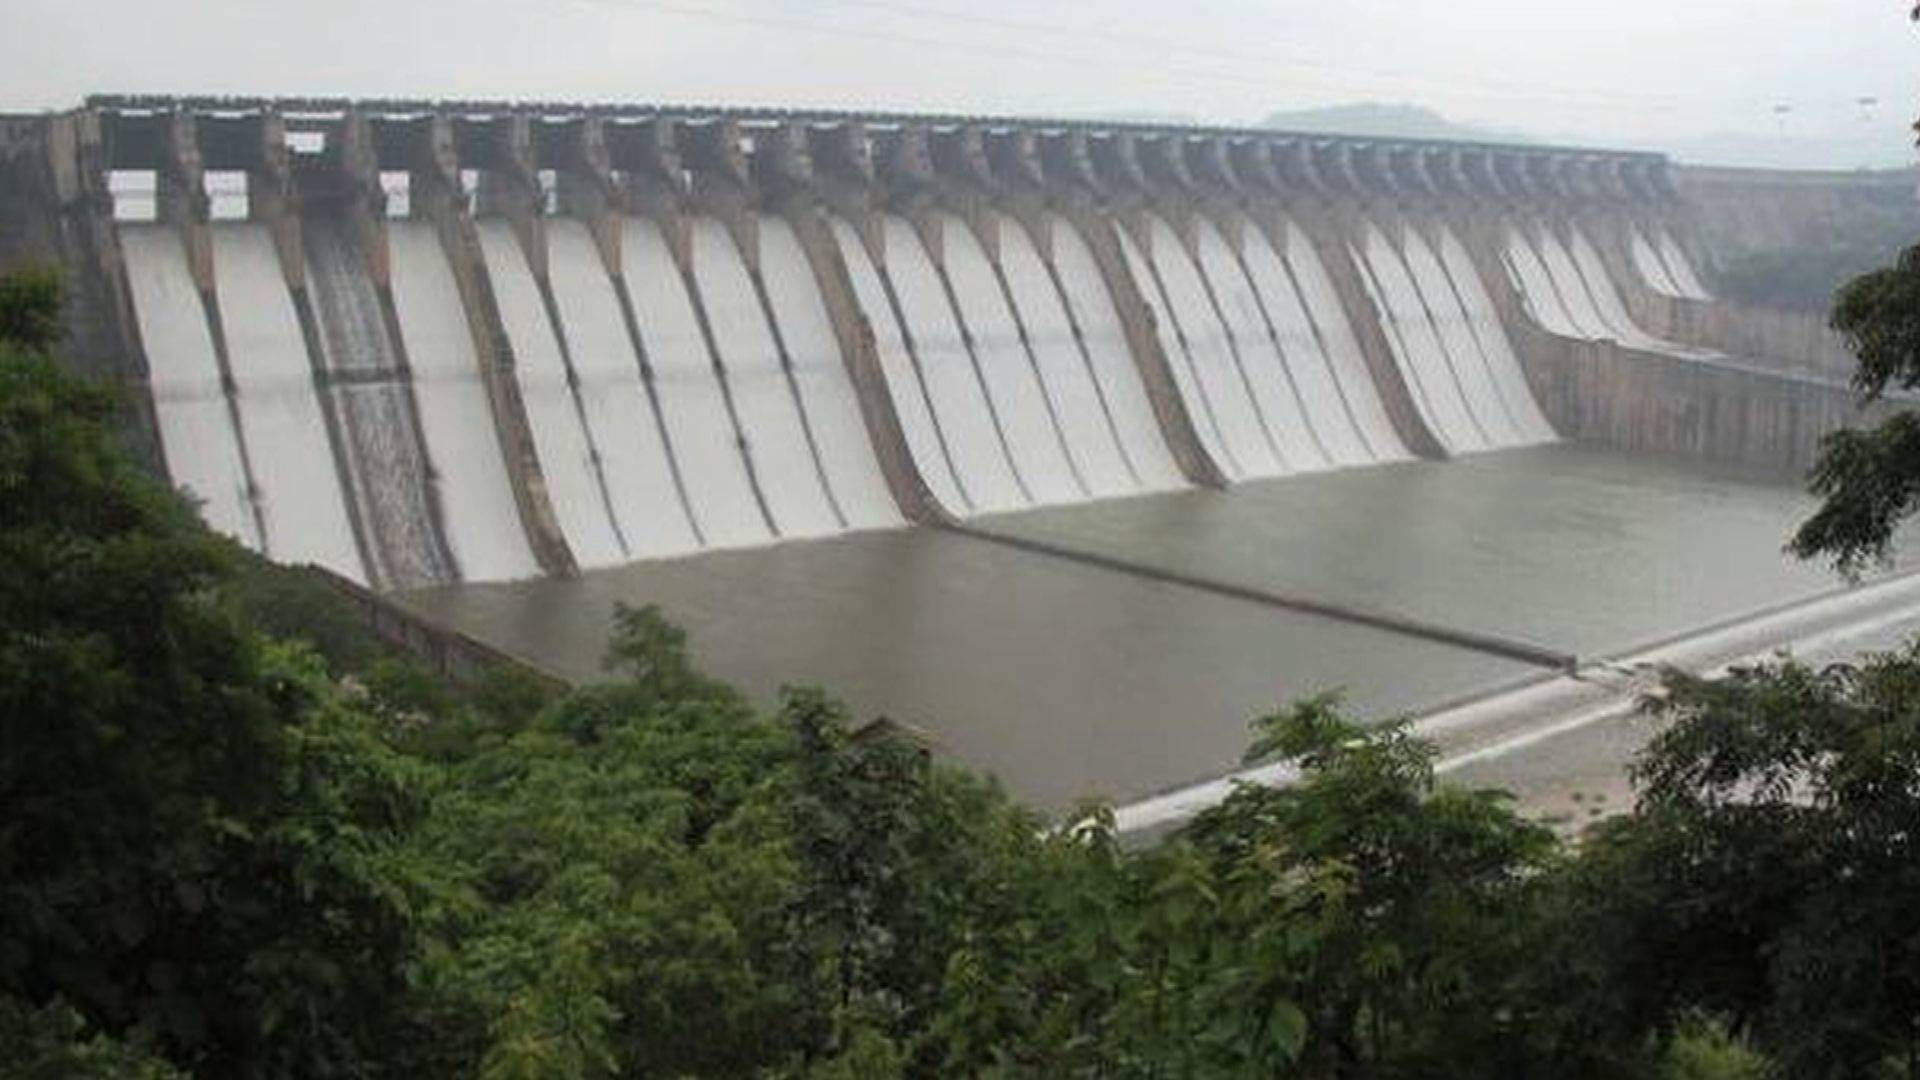 the sardar sarovar dam Indian prime minister narendra modi at the inauguration of the sardar sarovar dam in gujarat photograph: epa a mega-dam that became one of india's greatest environmental controversies during the three decades it was under construction has been formally declared complete by the prime minister.